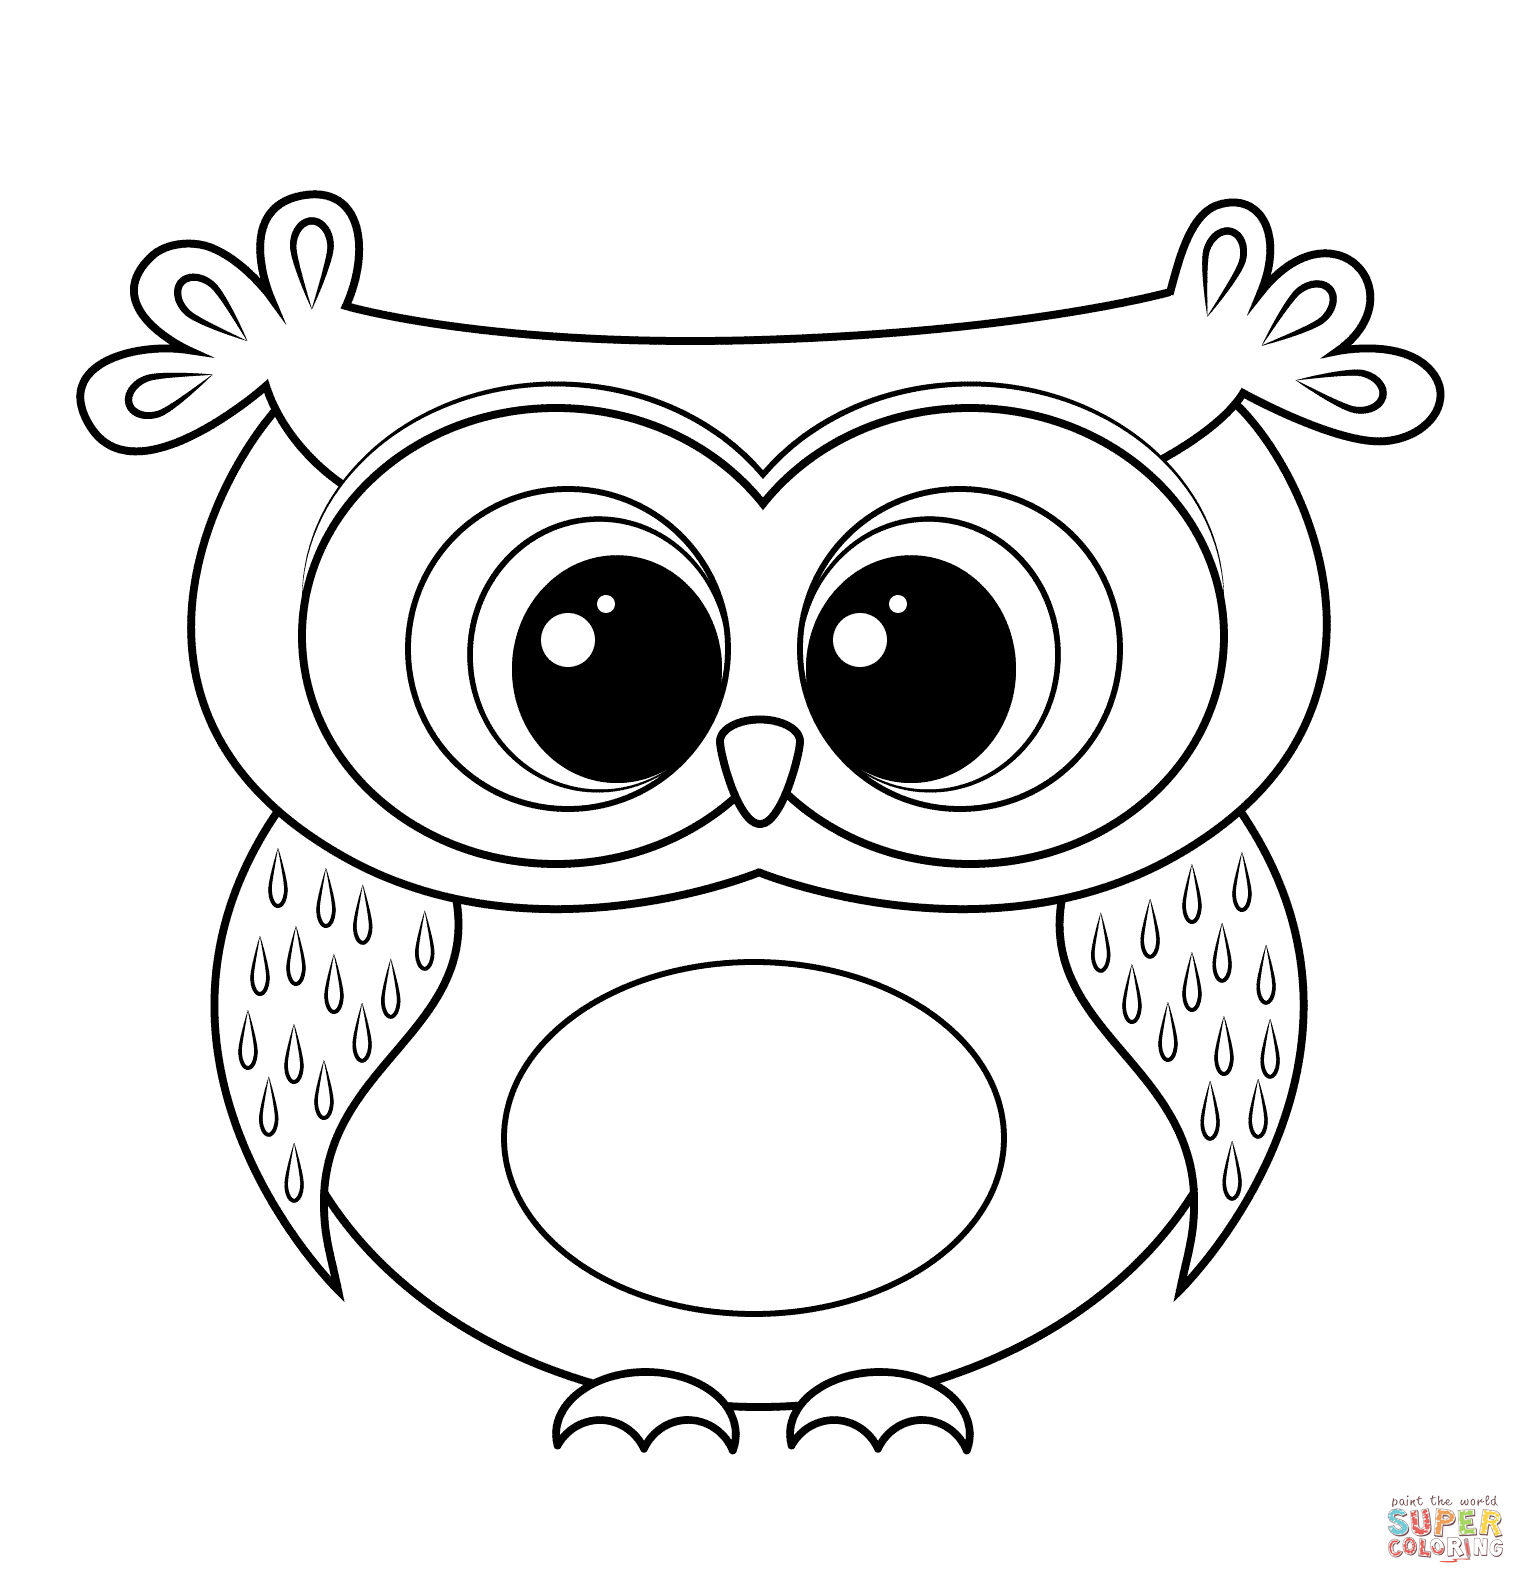 cute coloring pages of owls cartoon owl coloring page free printable coloring pages owls of coloring cute pages